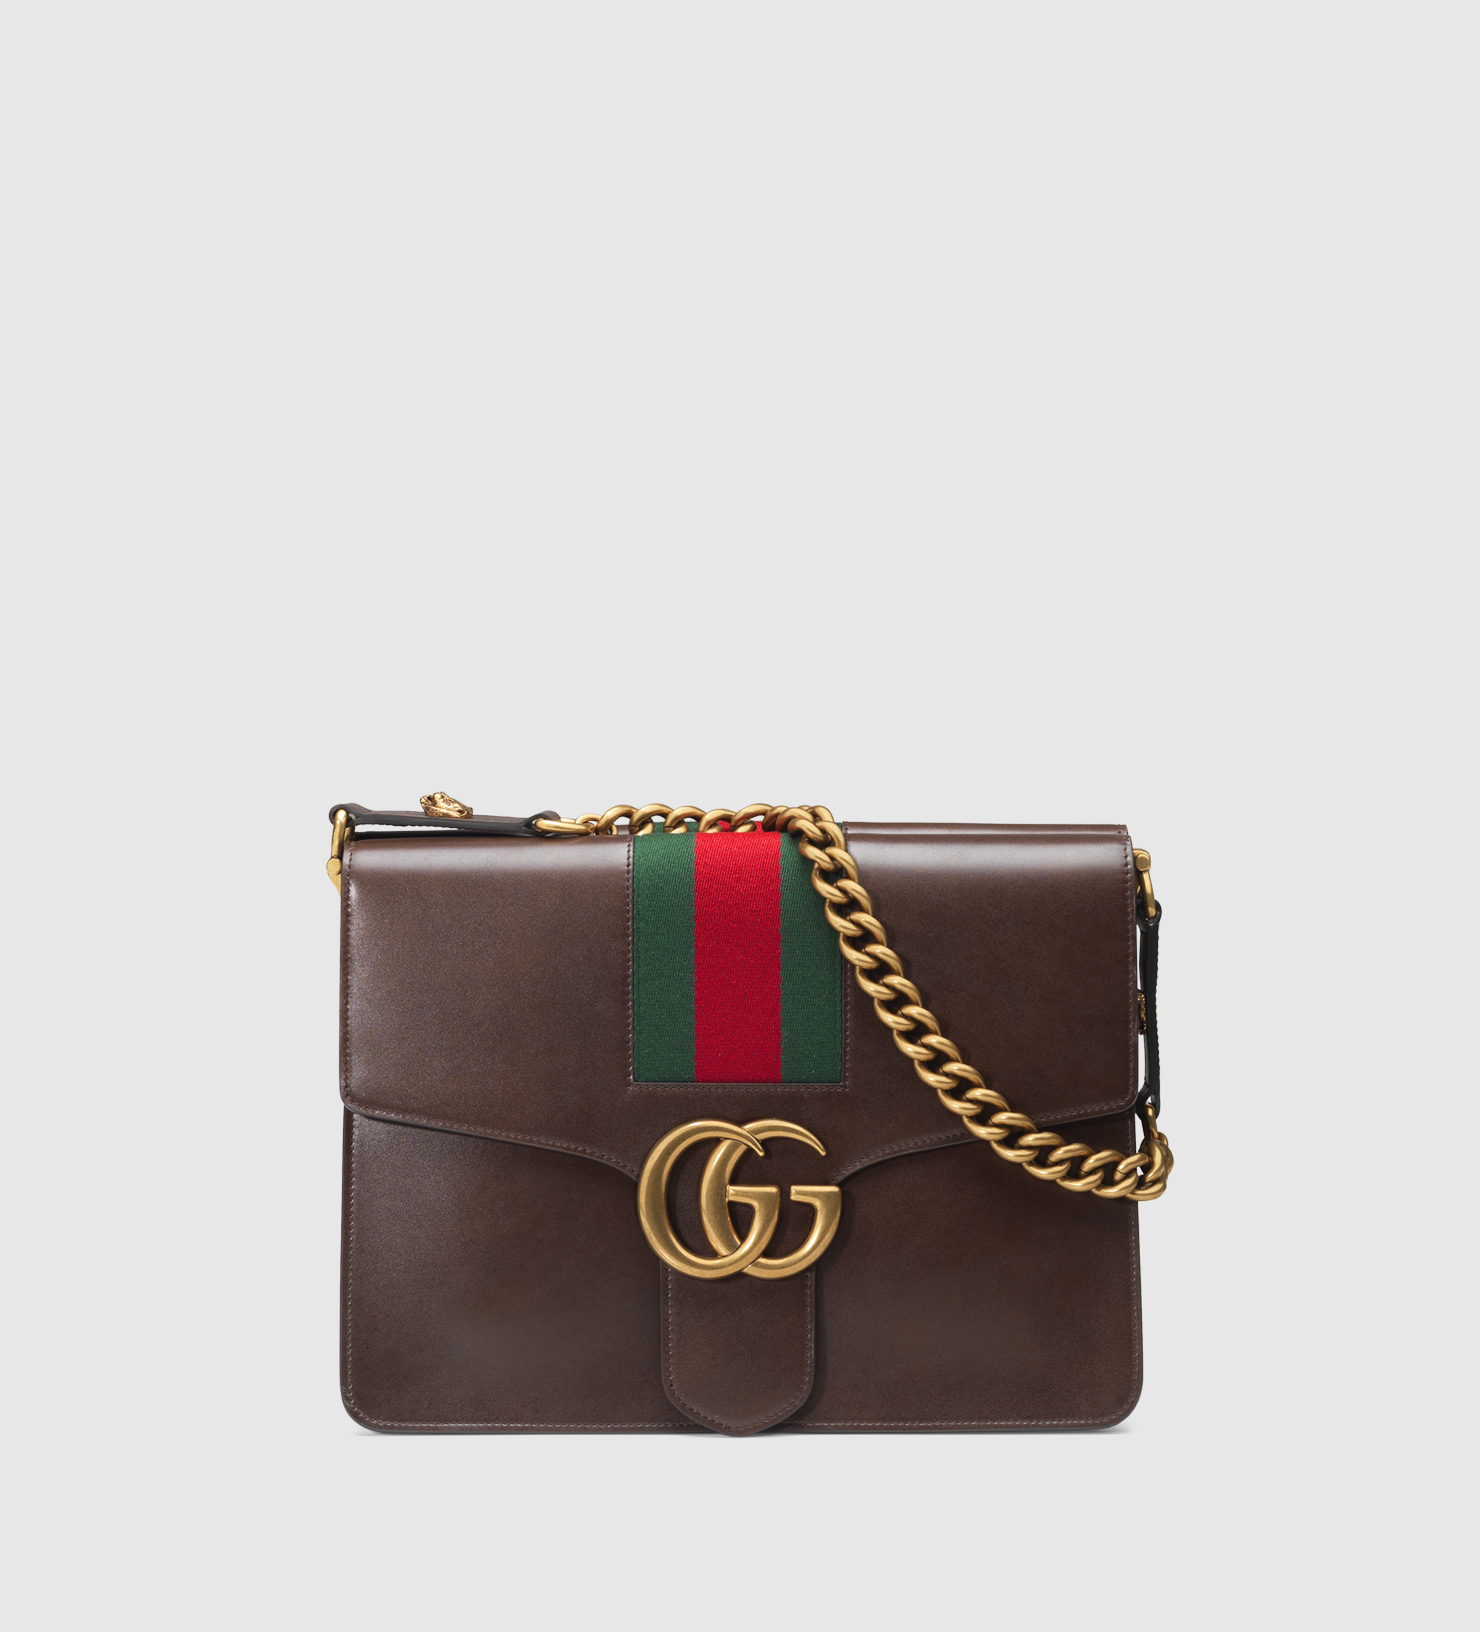 Gucci GG Marmont Leather Shoulder Bag in Brown (dark brown ...